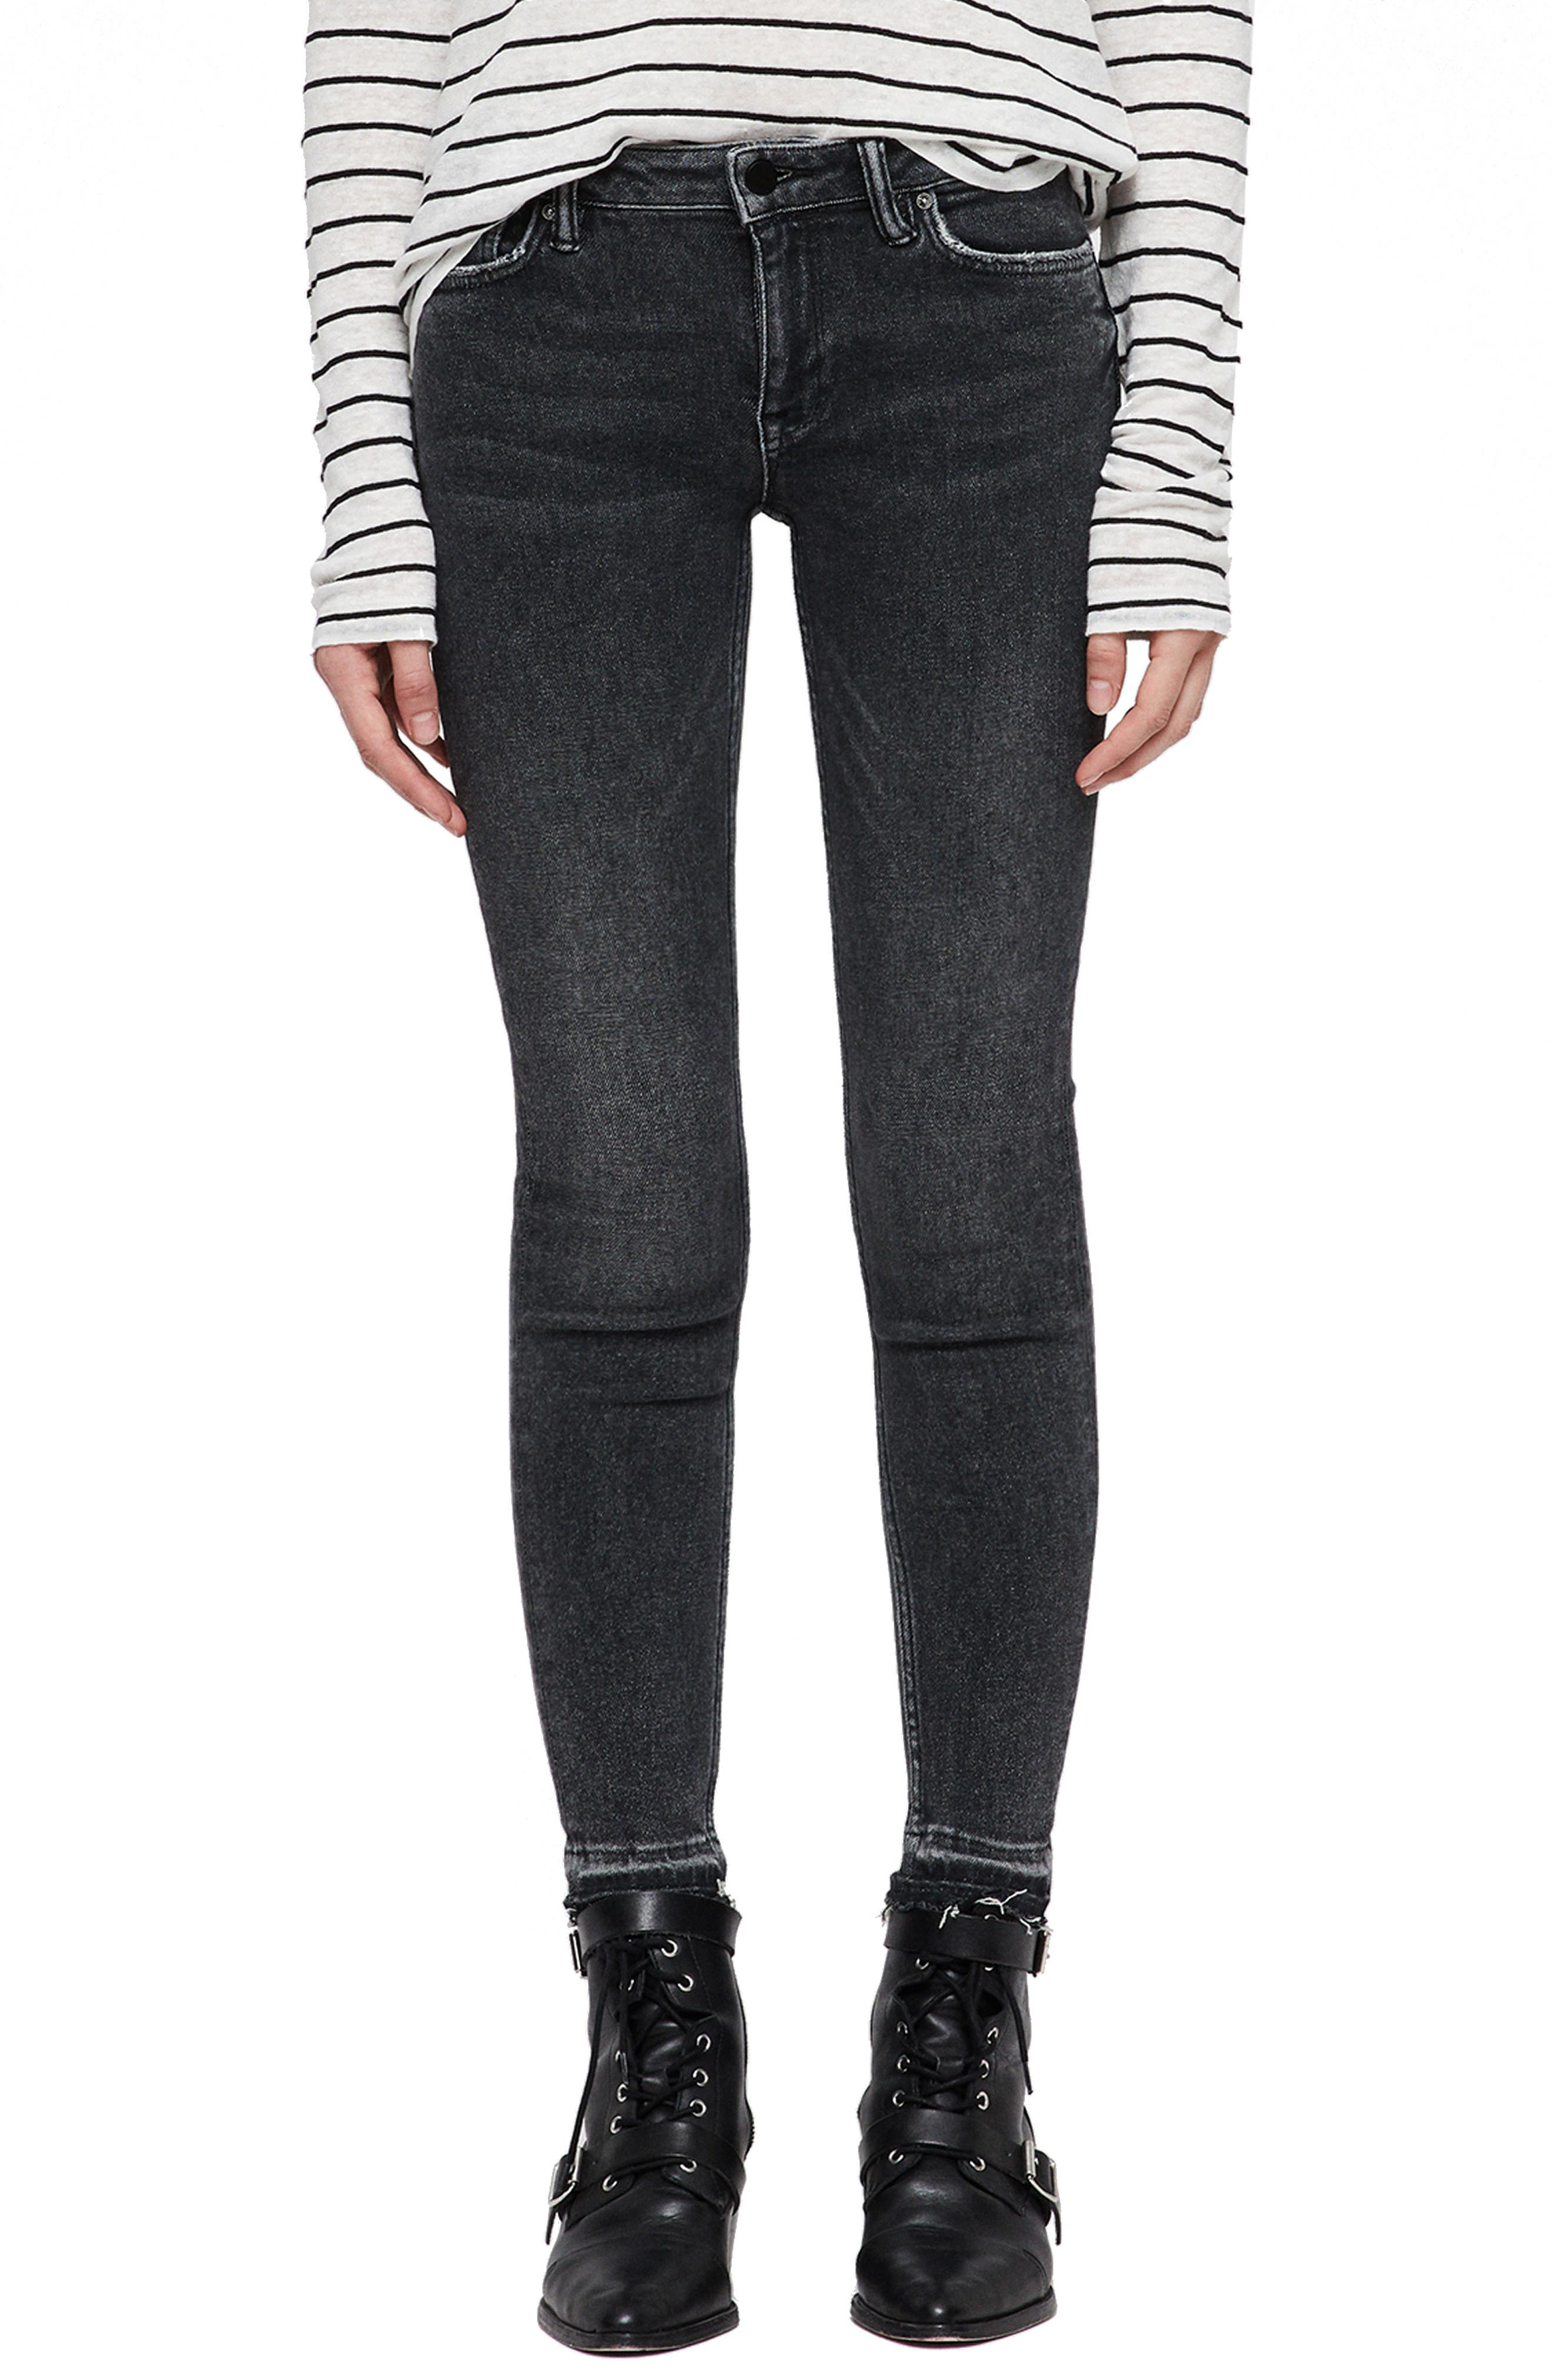 Mast Ankle Skinny Jeans,                             Main thumbnail 1, color,                             WASHED BLACK